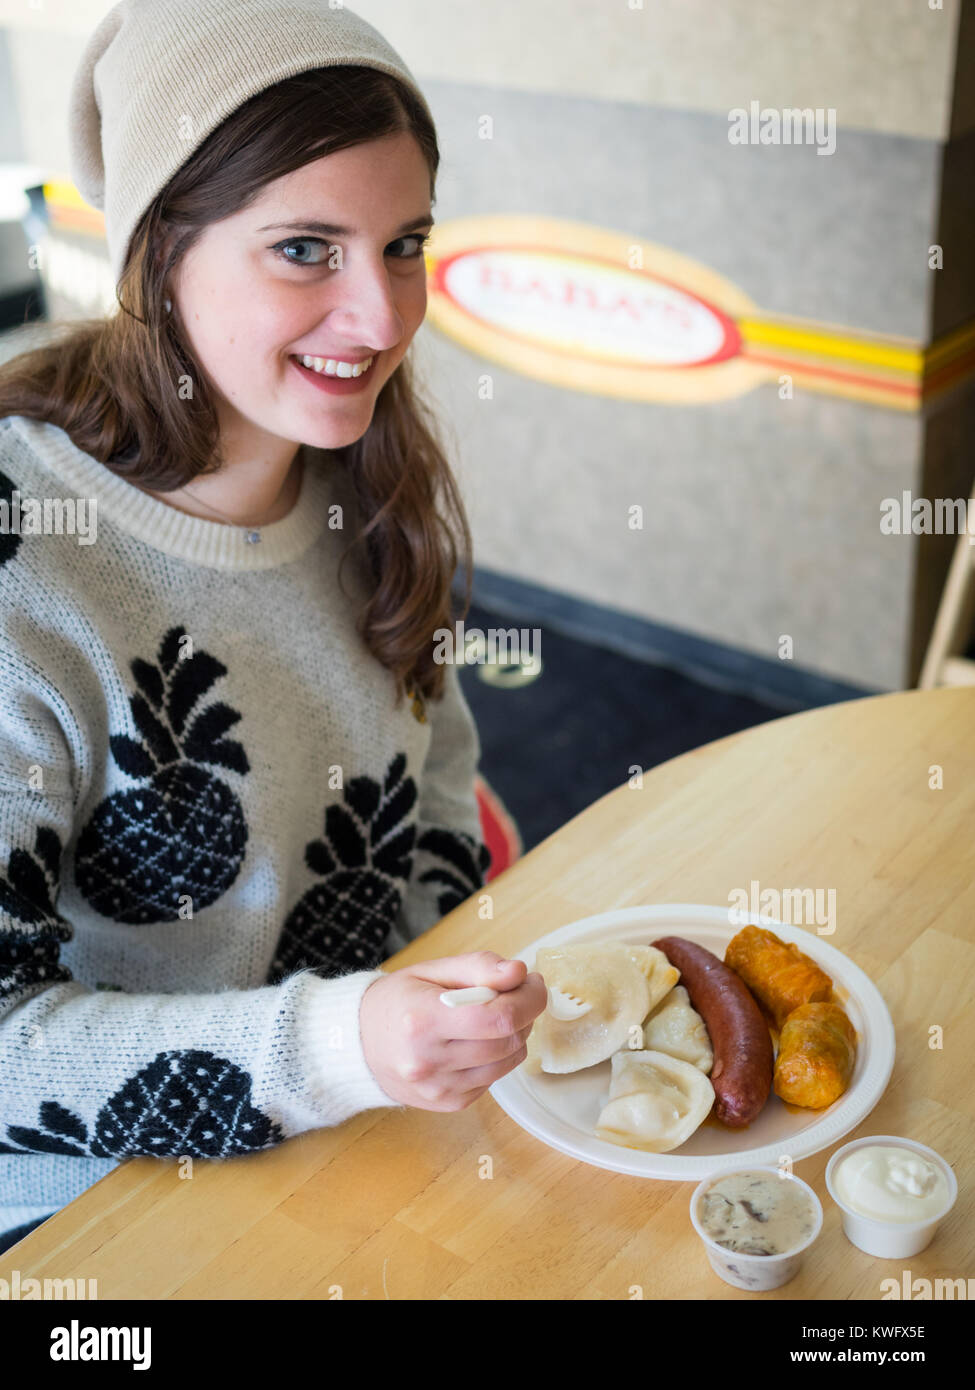 A pretty brunette girl enjoys a platter of perogies, cabbage rolls, and a smokie from Baba's Homestyle Perogies - Stock Image